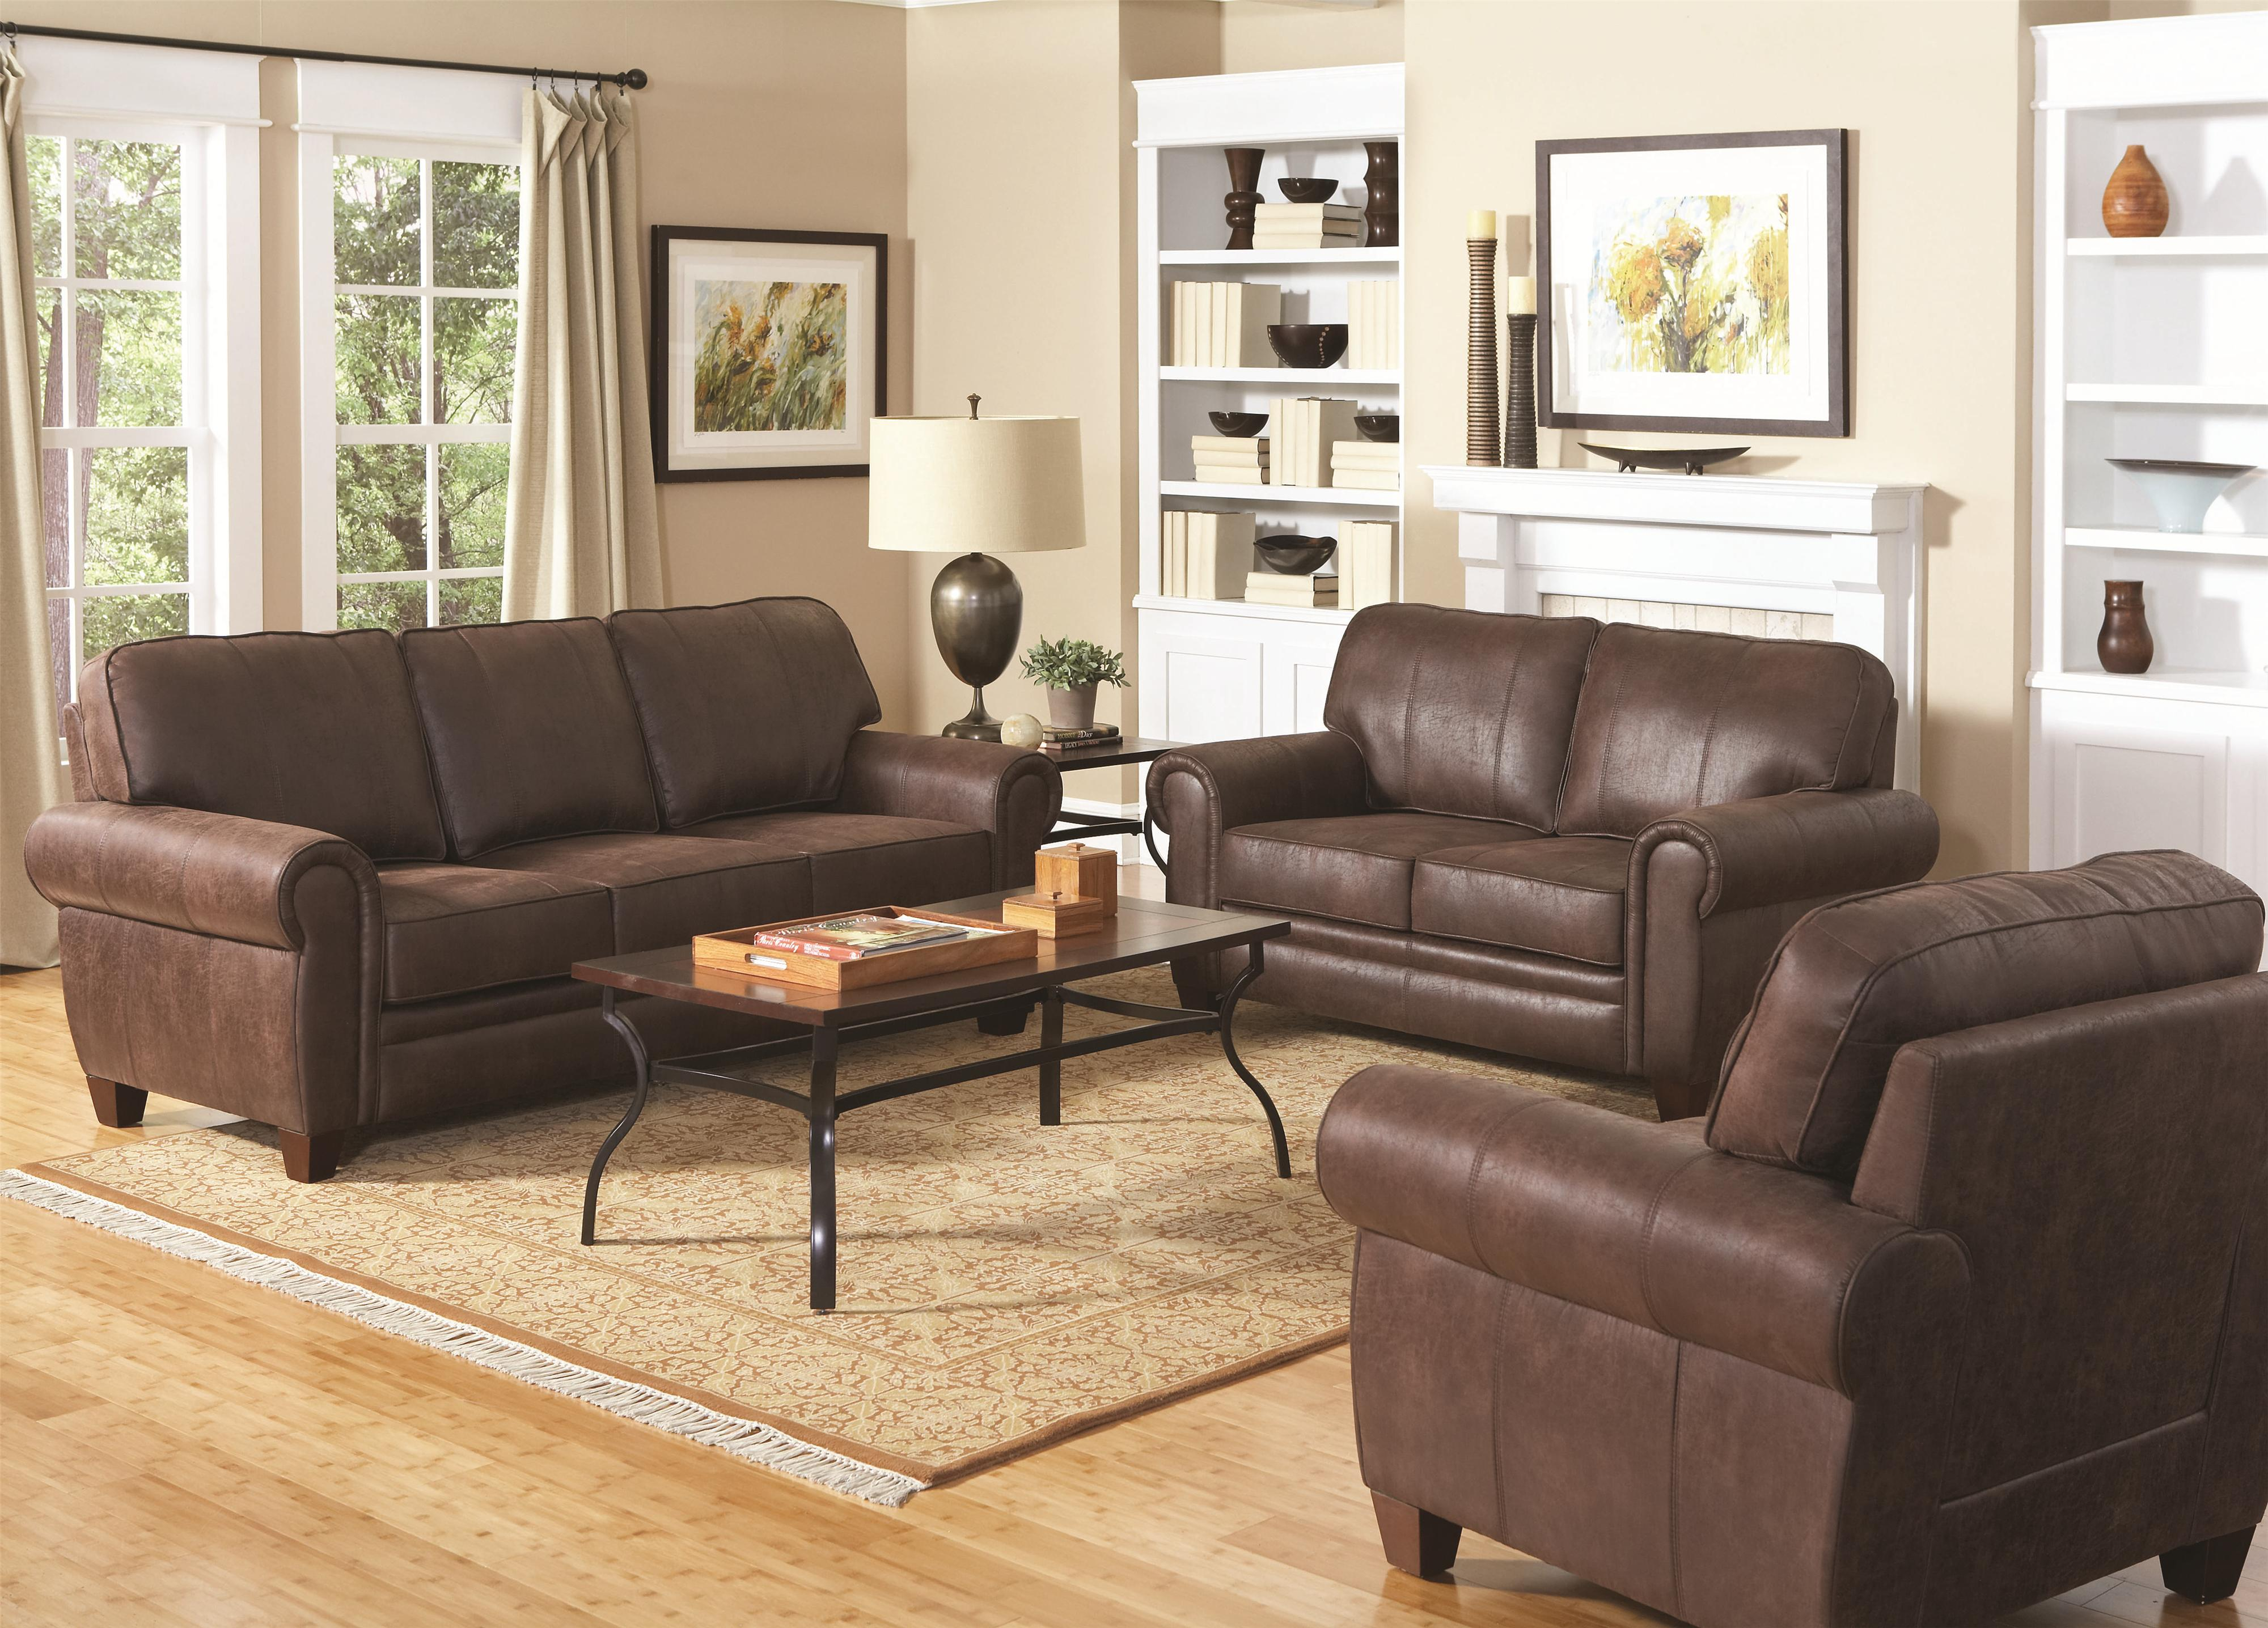 Coaster Bentley Stationary Living Room Group - Item Number: 504200 Living Room Group 1